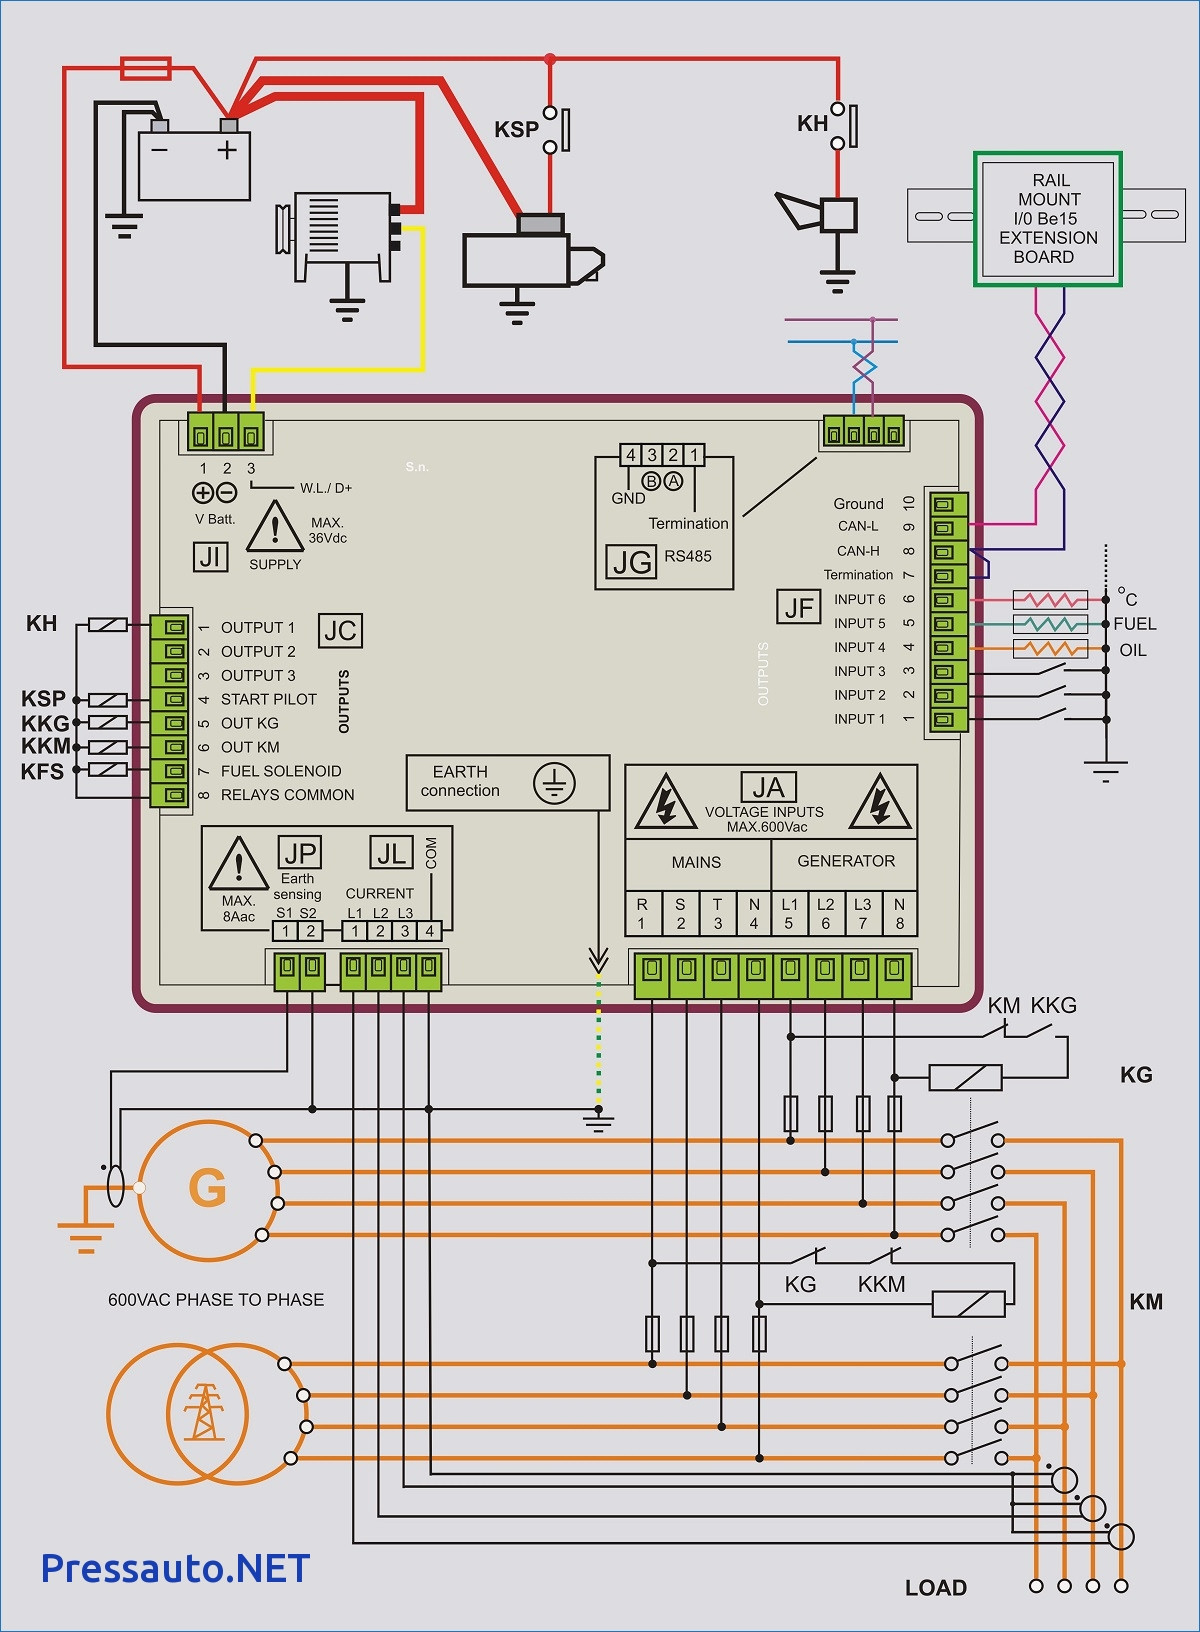 generac ats wiring diagram Collection-Wiring Diagram Standby Generator New Portable Generator Transfer Switch Wiring Diagram for Manual Generac 5-l